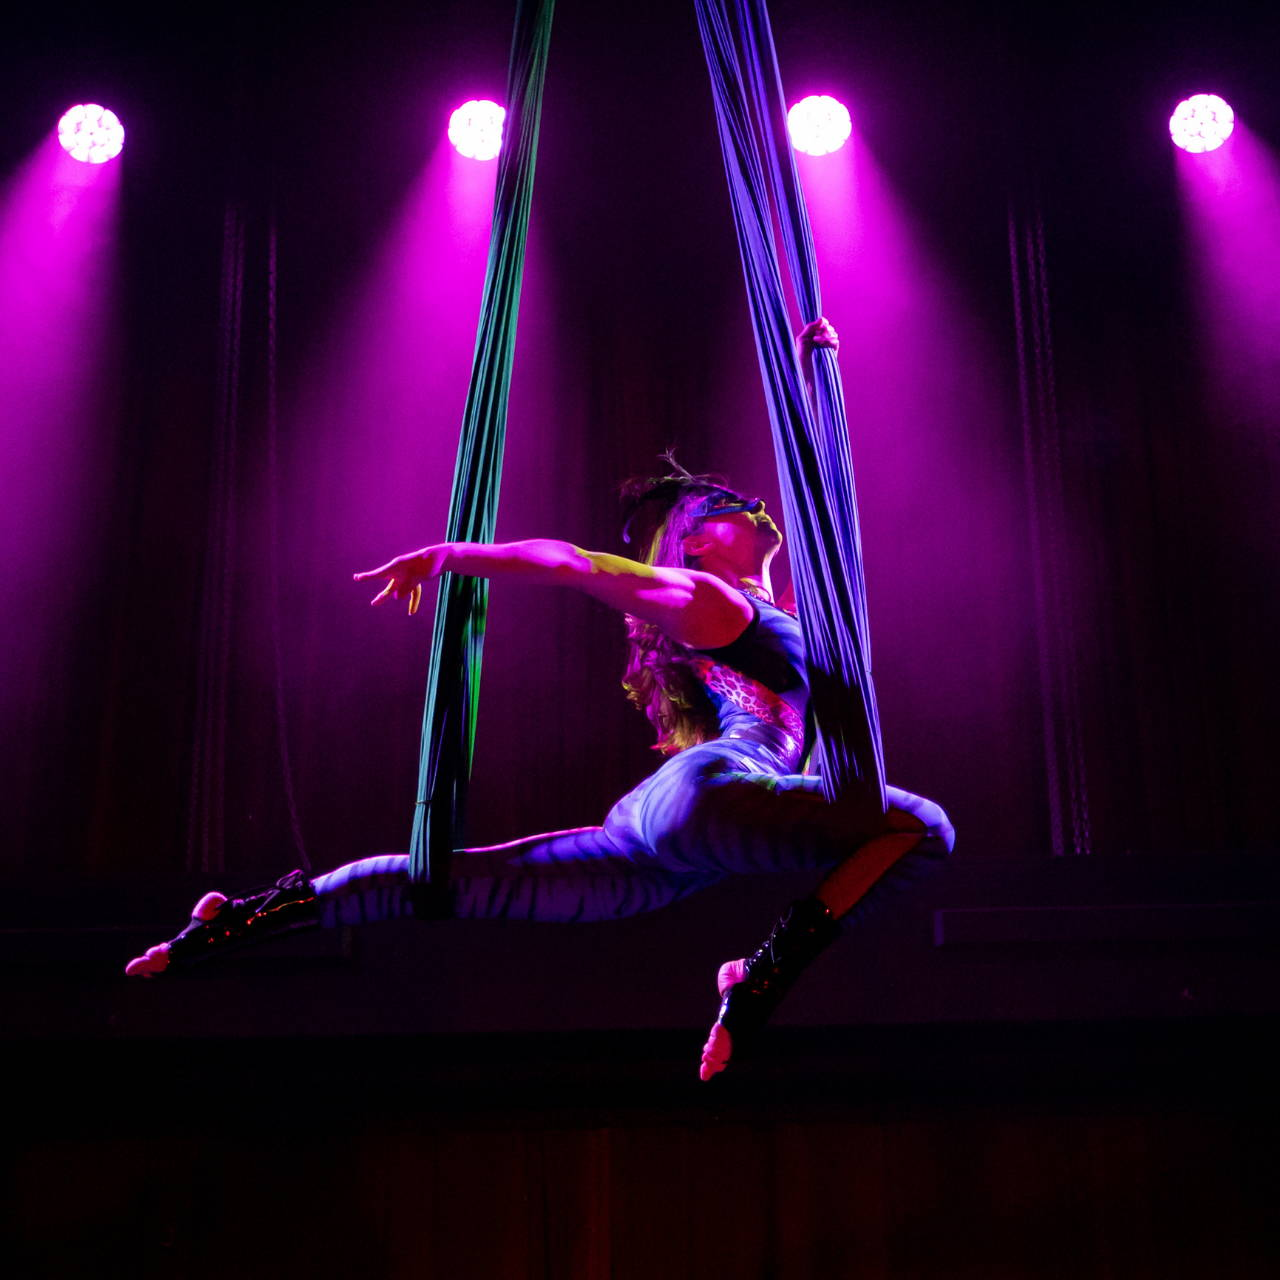 Aerialist performing on silks, wearing a blue mask and leotard on purple backlit background